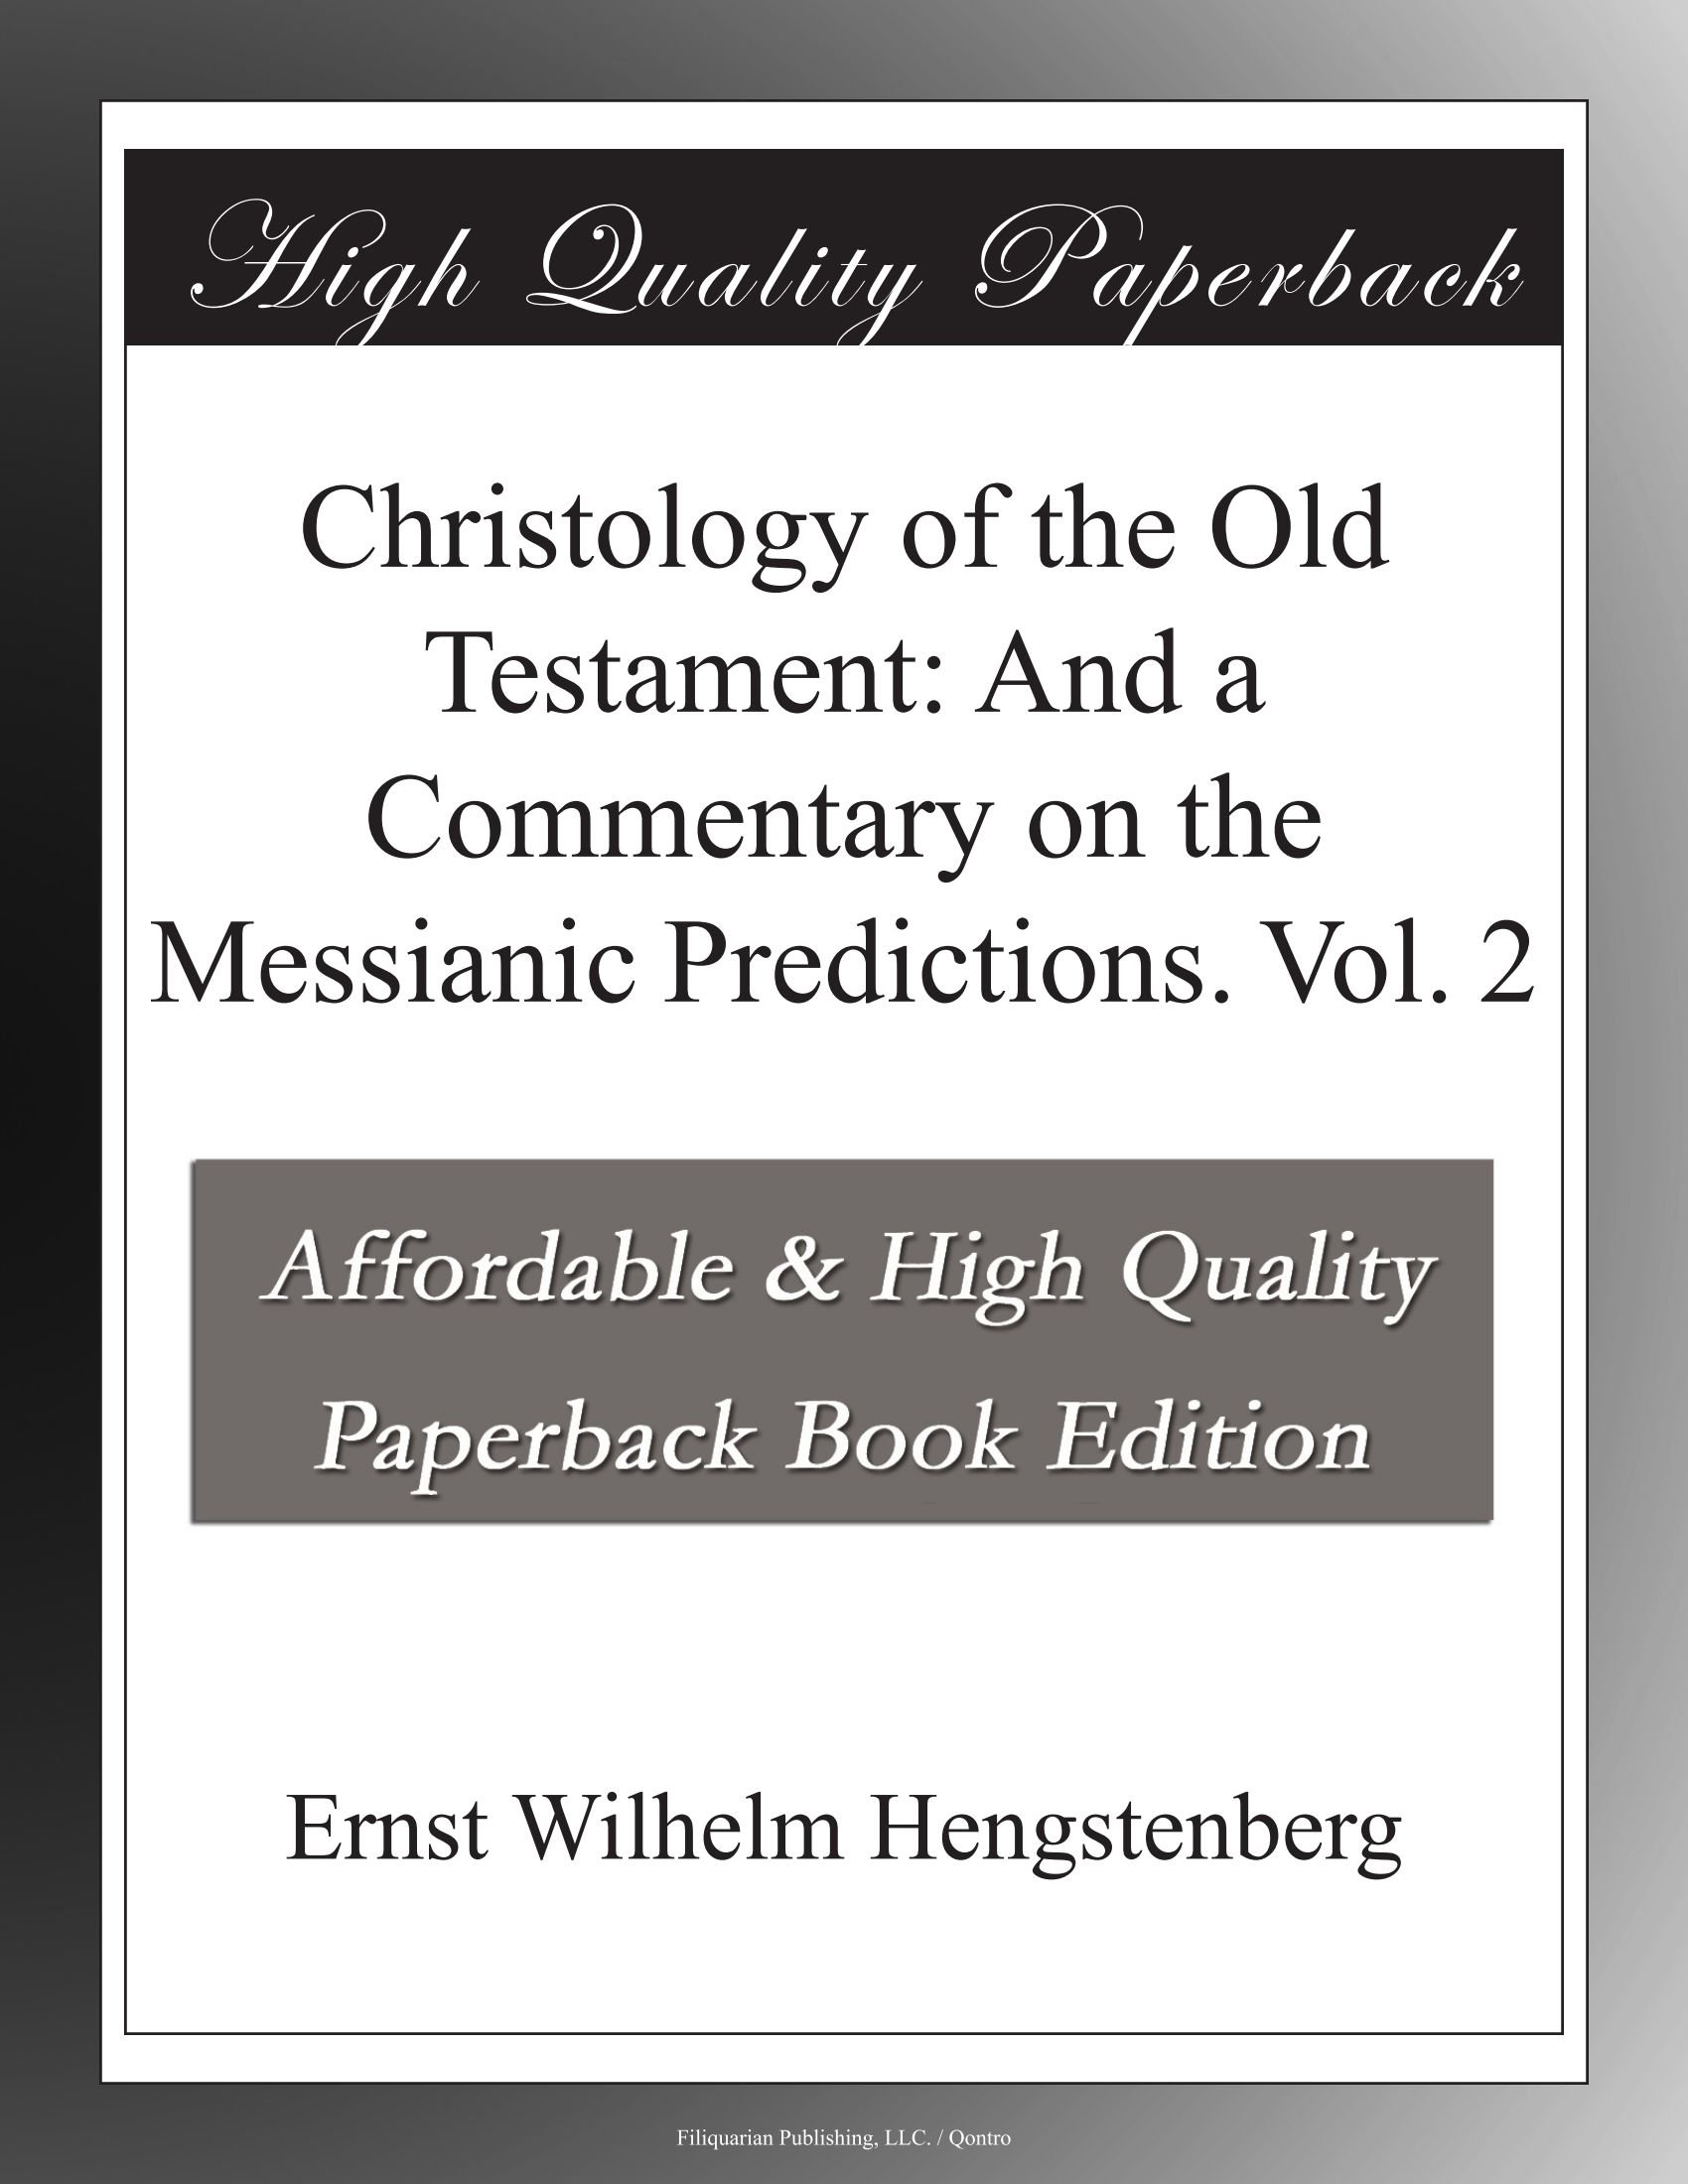 Christology of the Old Testament: And a Commentary on the Messianic Predictions. Vol. 2 pdf